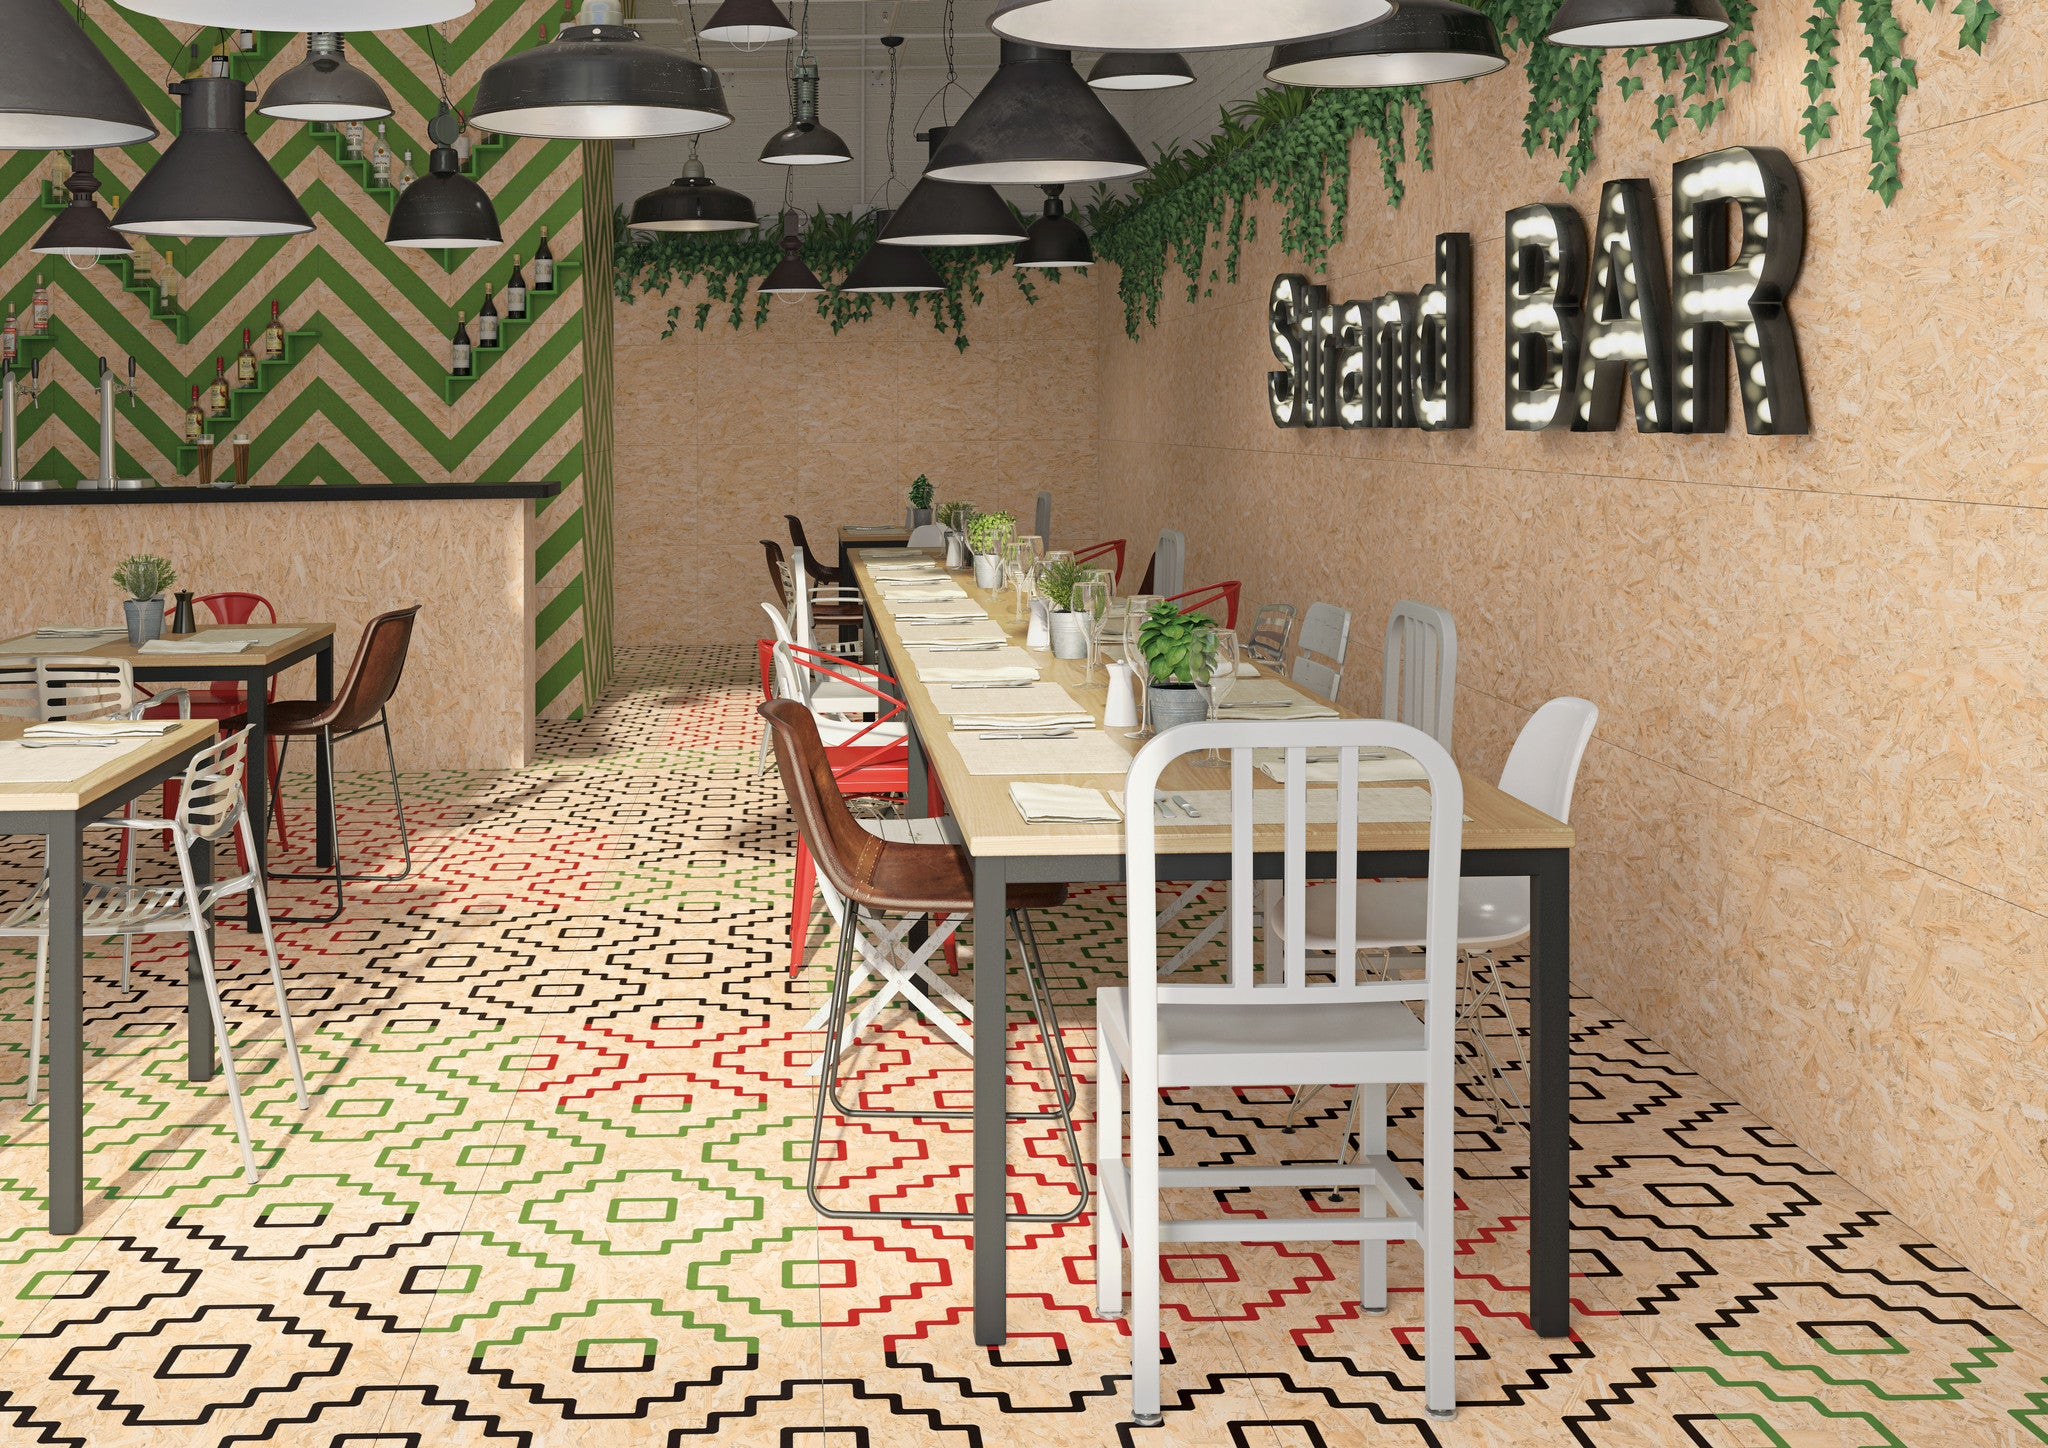 Chipboard Tiles in Cafe